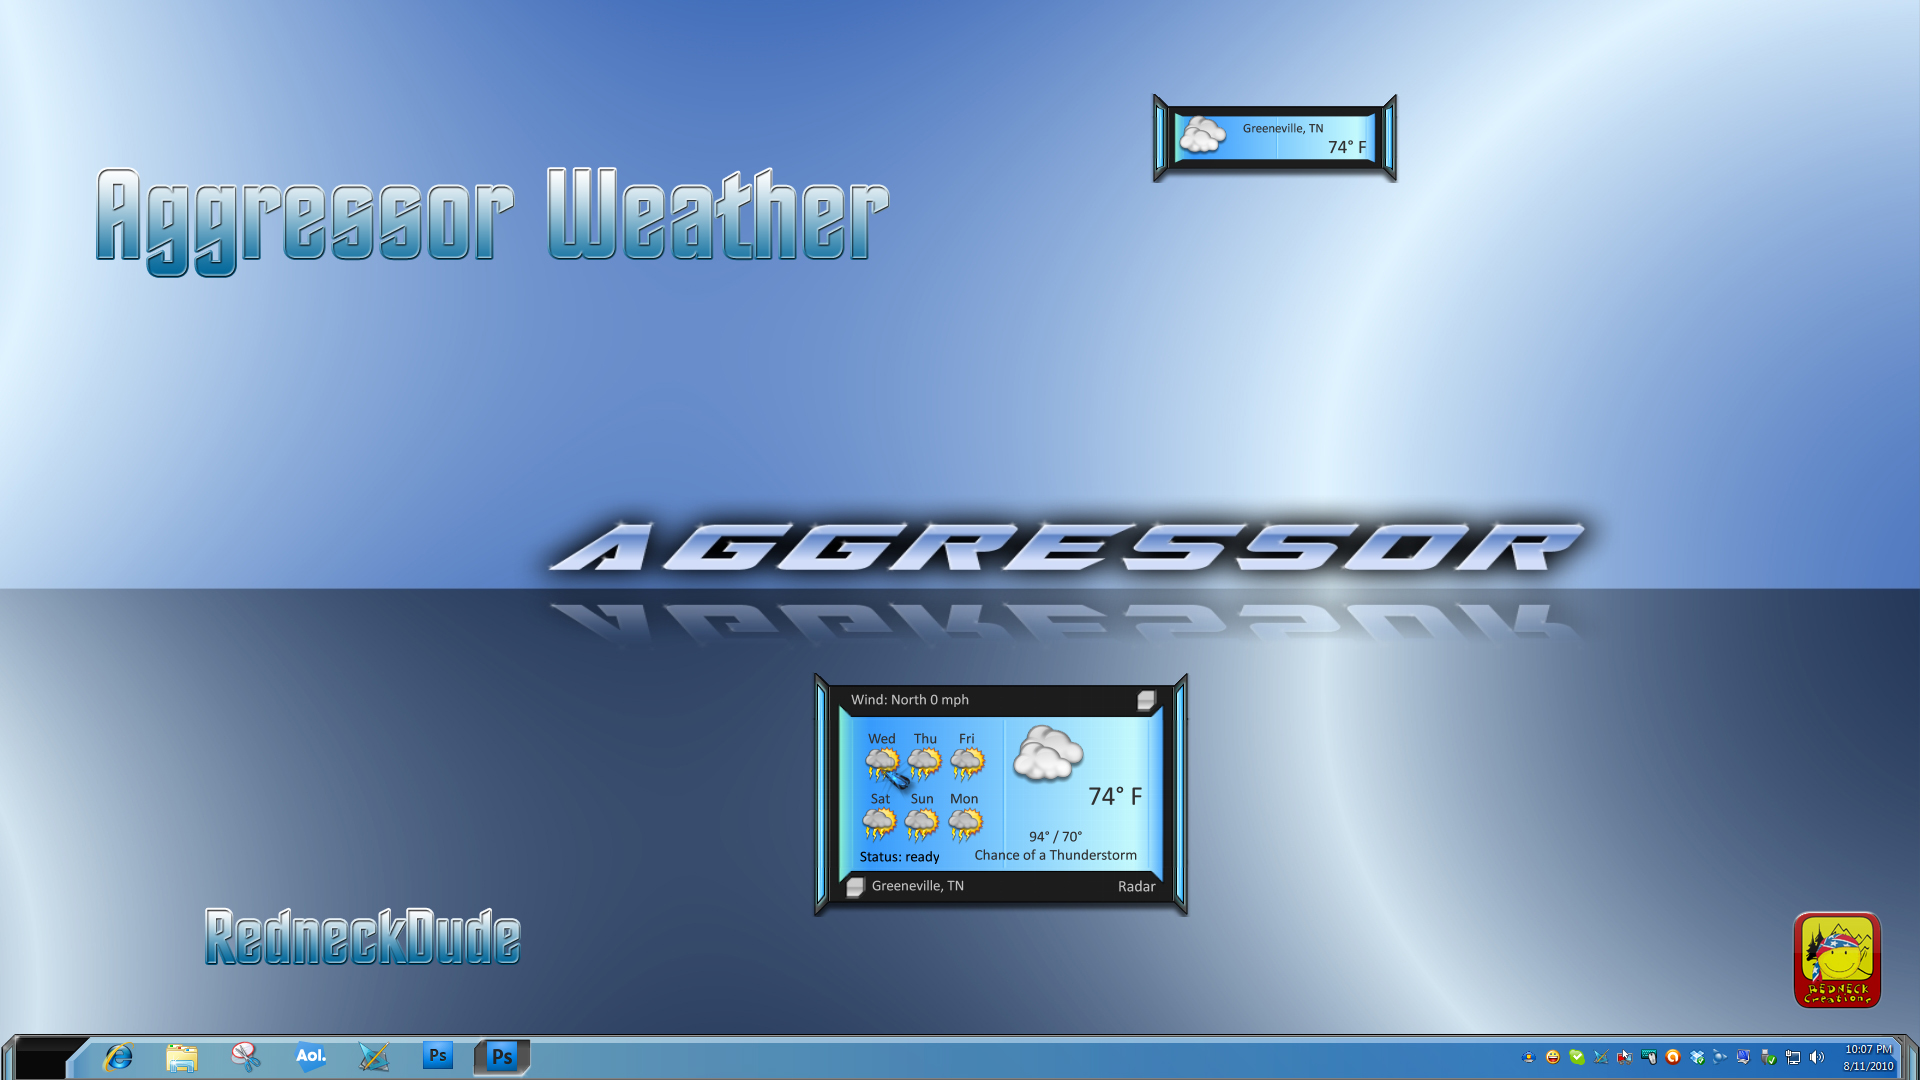 Aggressor Weather